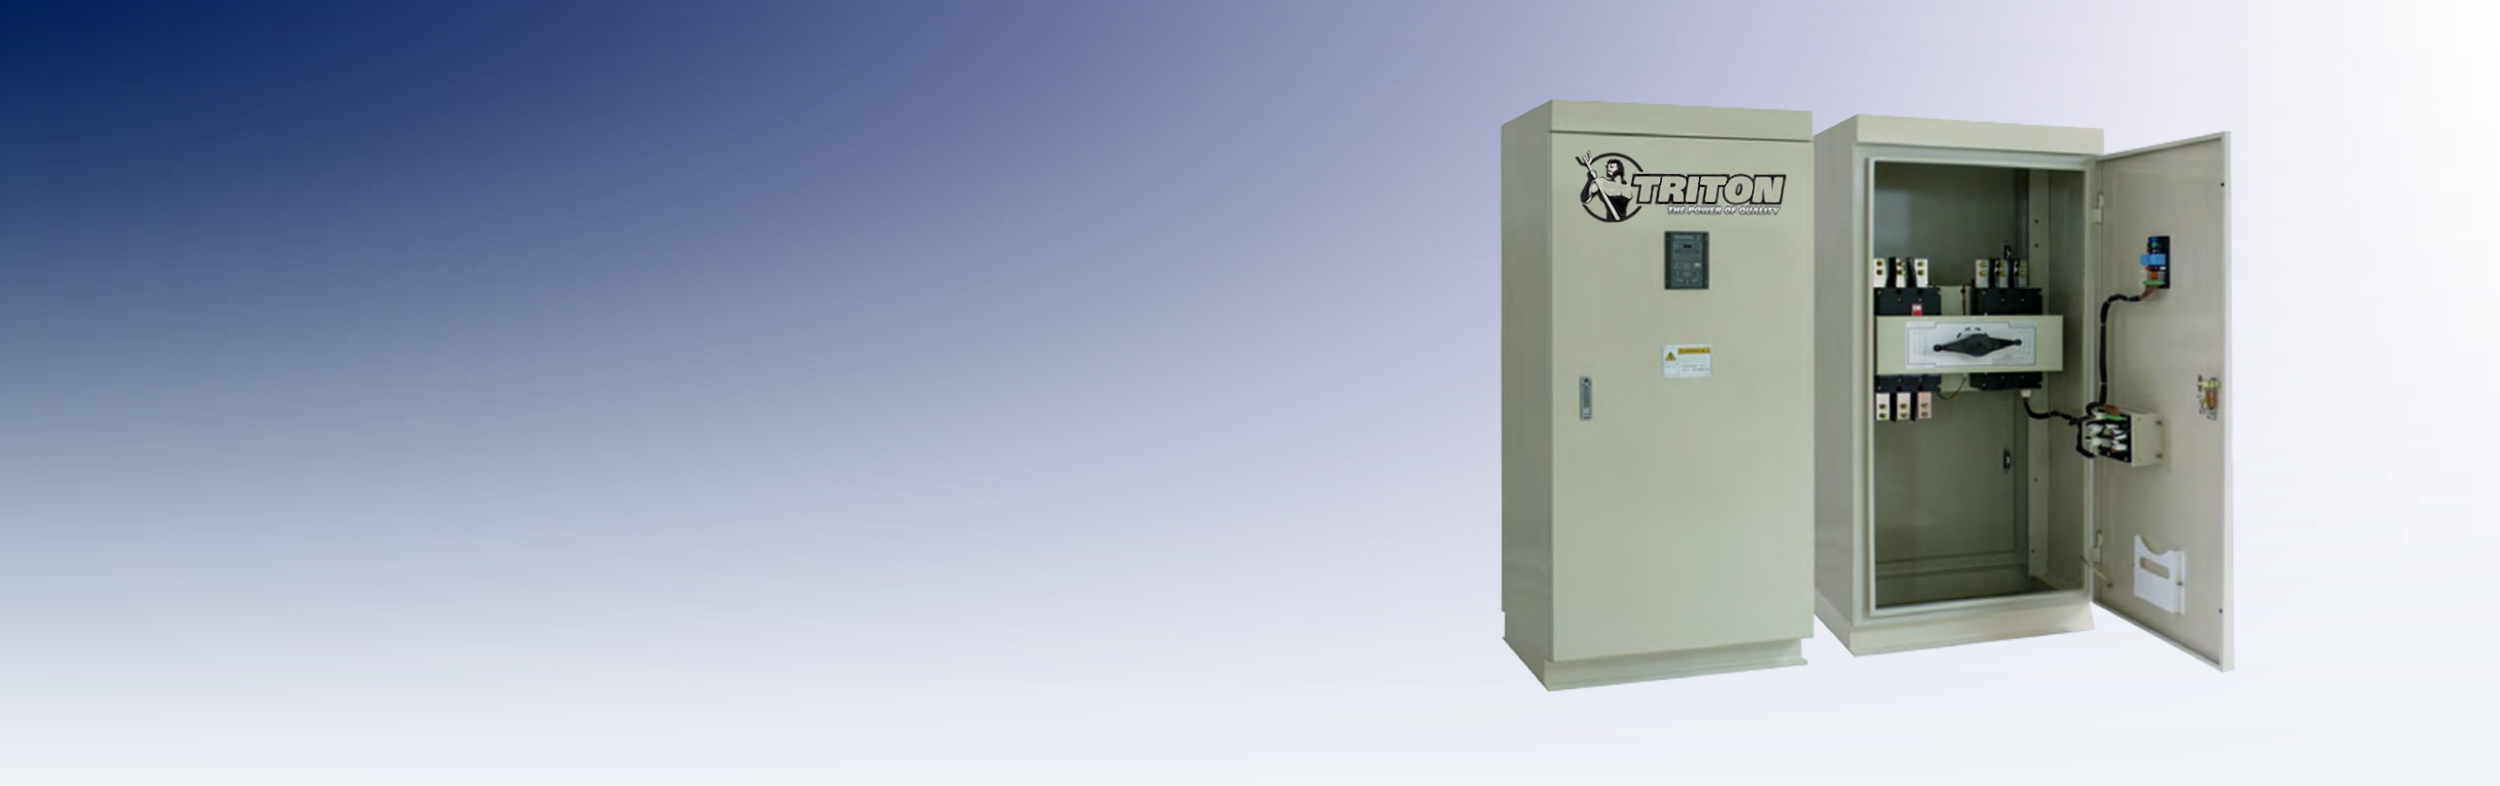 1600 Amp Triton Automatic Transfer Switch Ats Details About Controller Build Your Non Ul